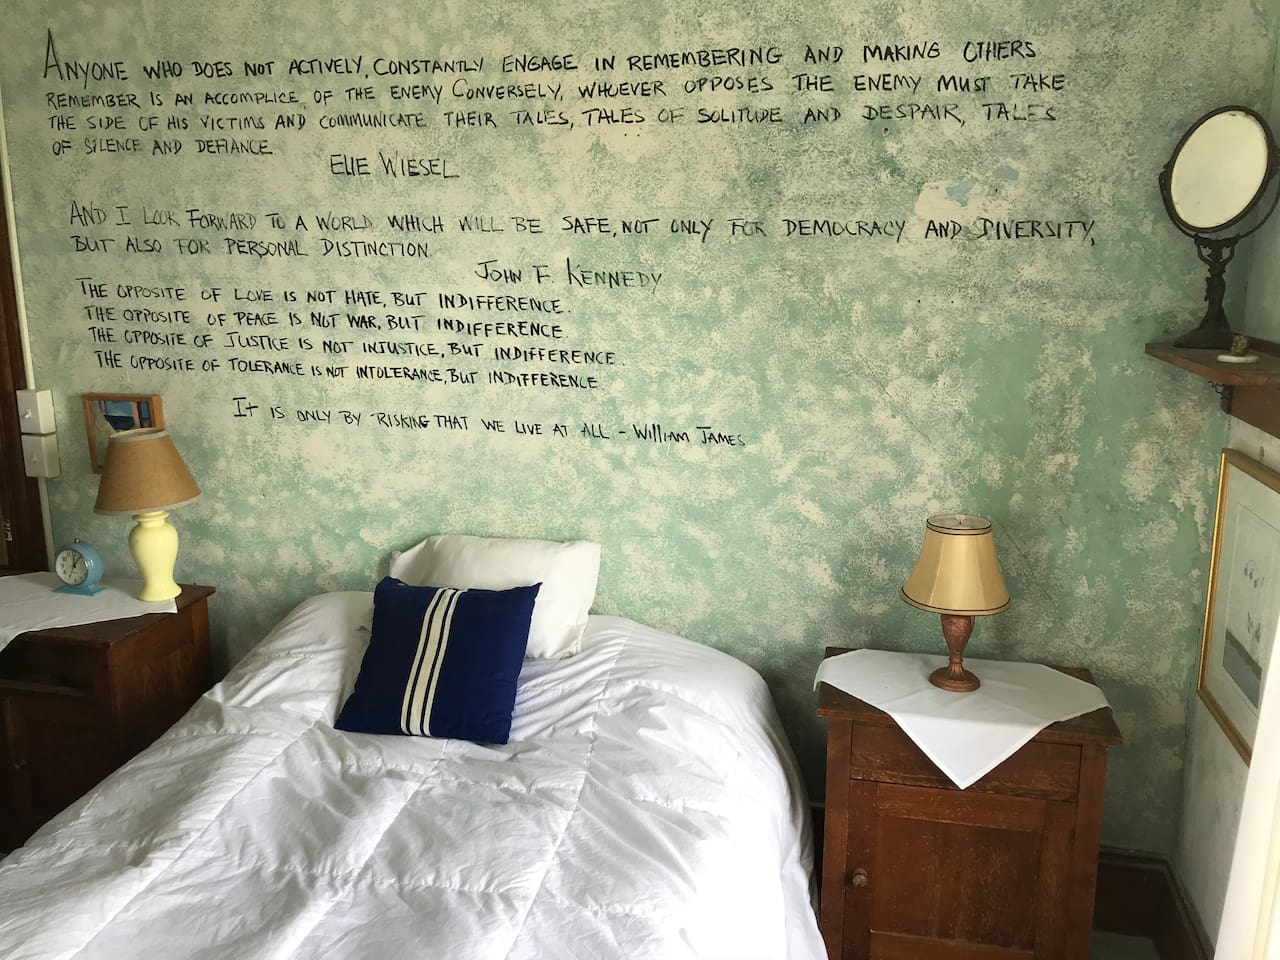 The Malaga Island Room with inspiring quotations by Elite Wiesel and others.